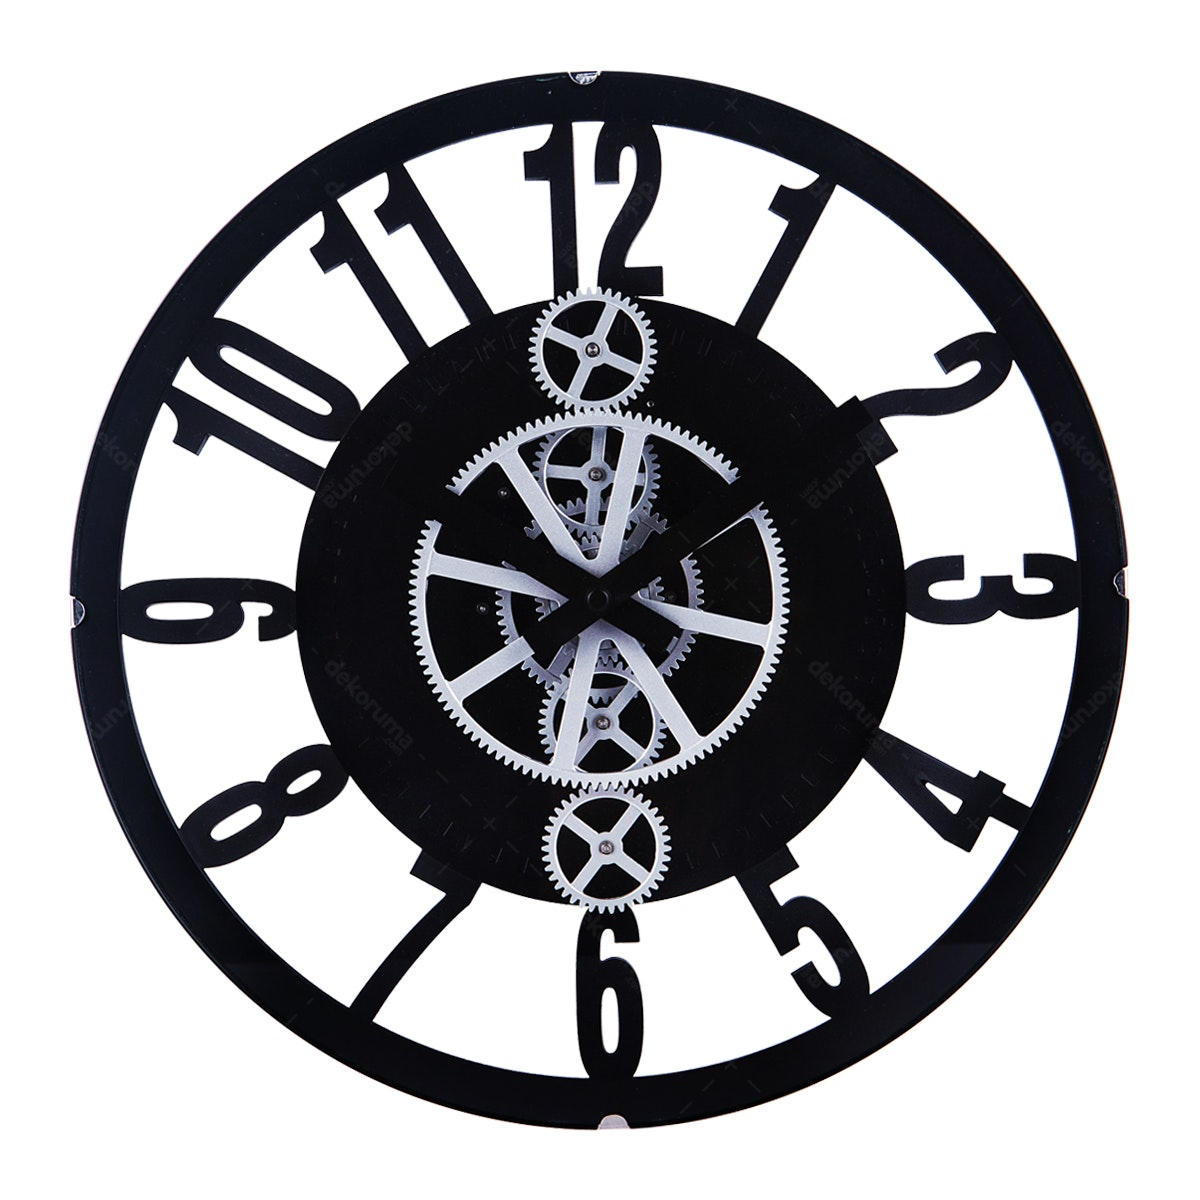 Gearclock Plastic Gear Wall Clock Black